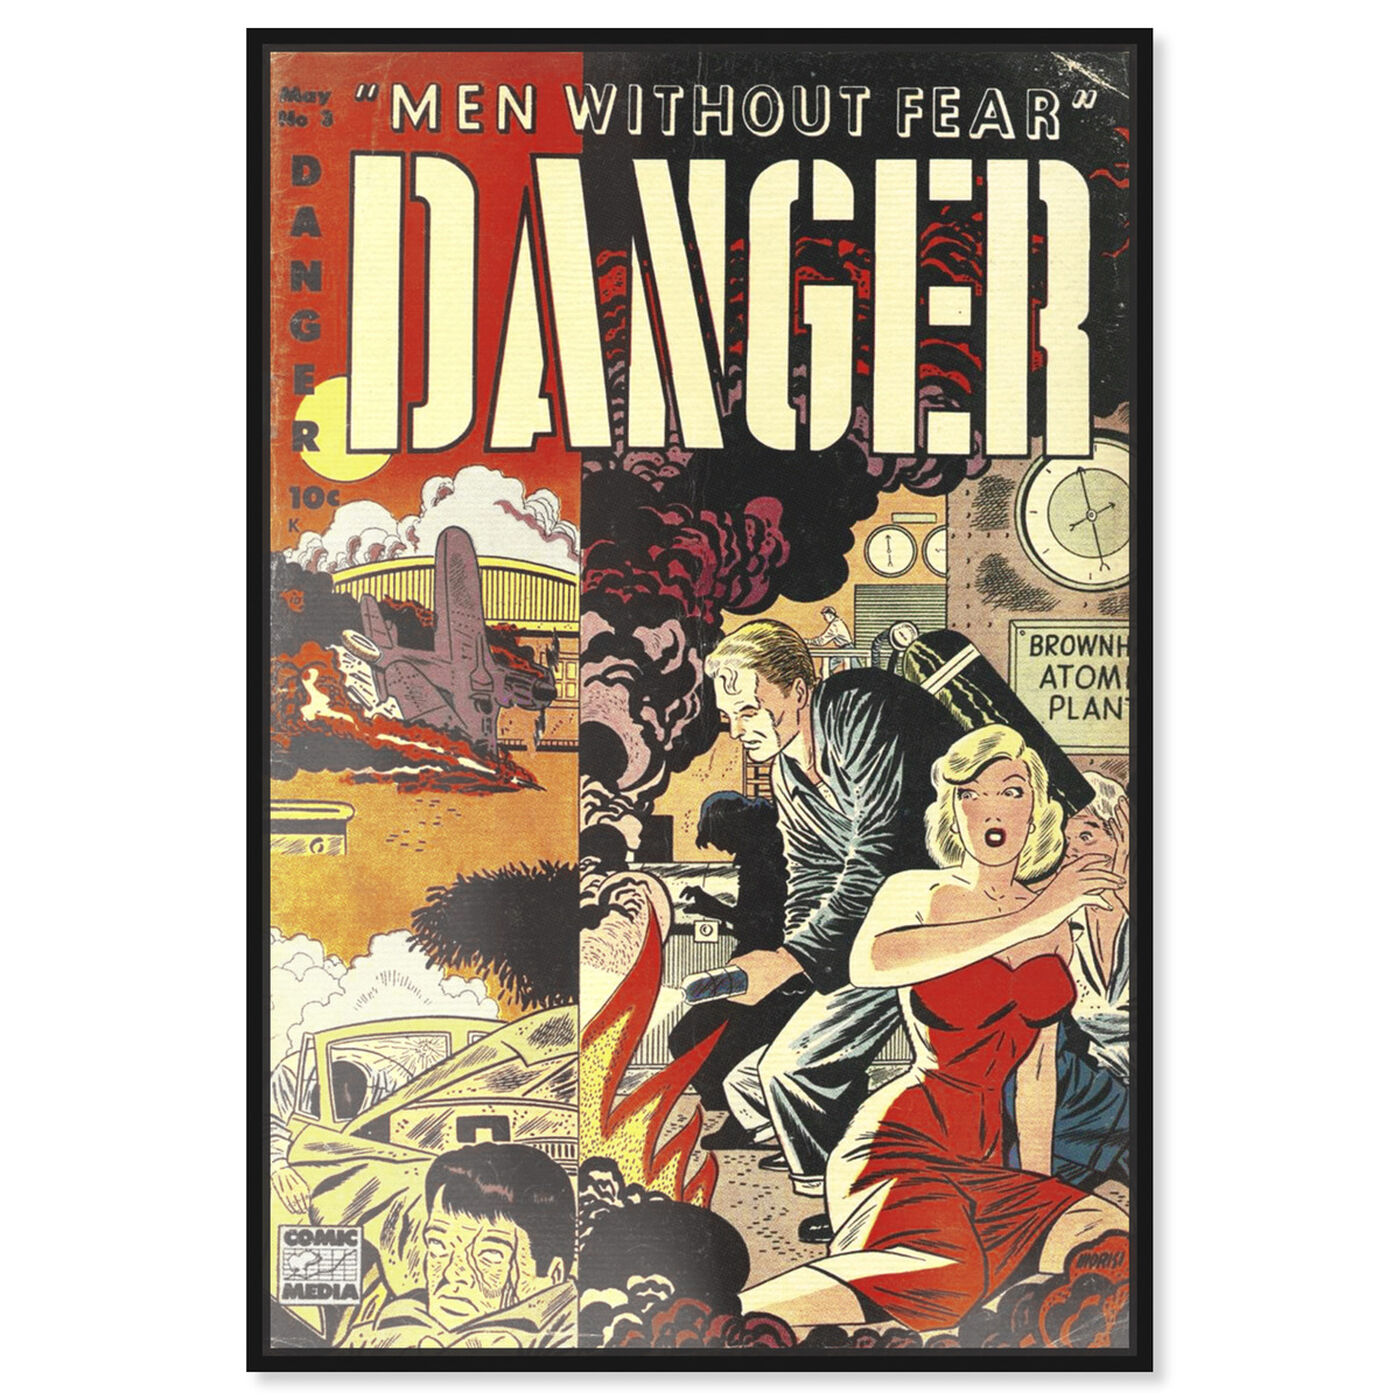 Front view of Men Without Fear featuring advertising and comics art.